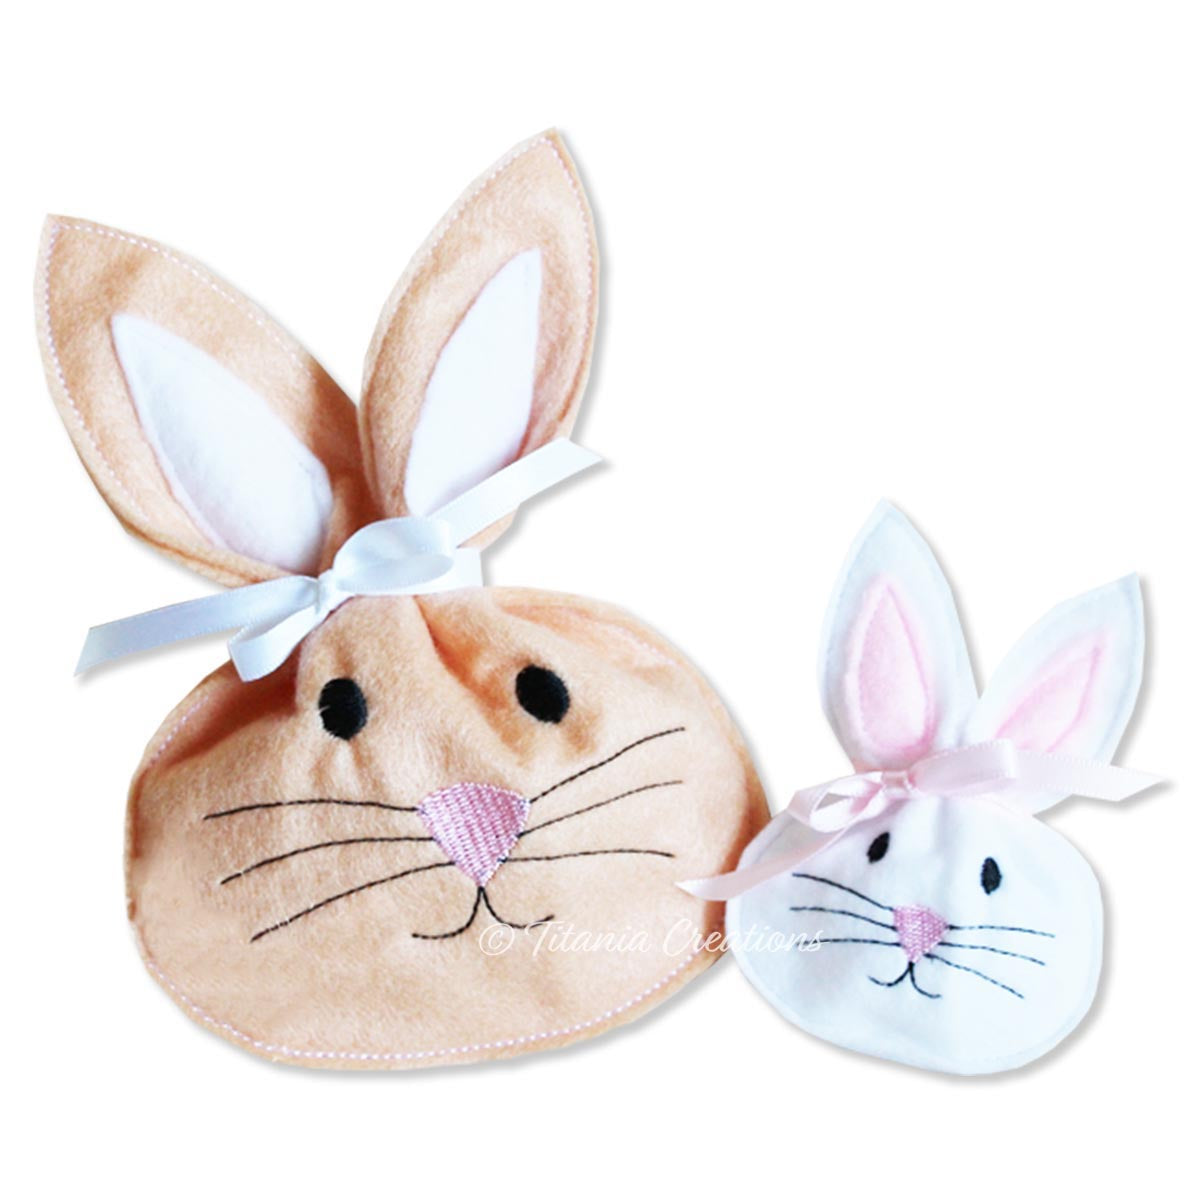 ITH Bunny Treat Bag 4x4 5x7